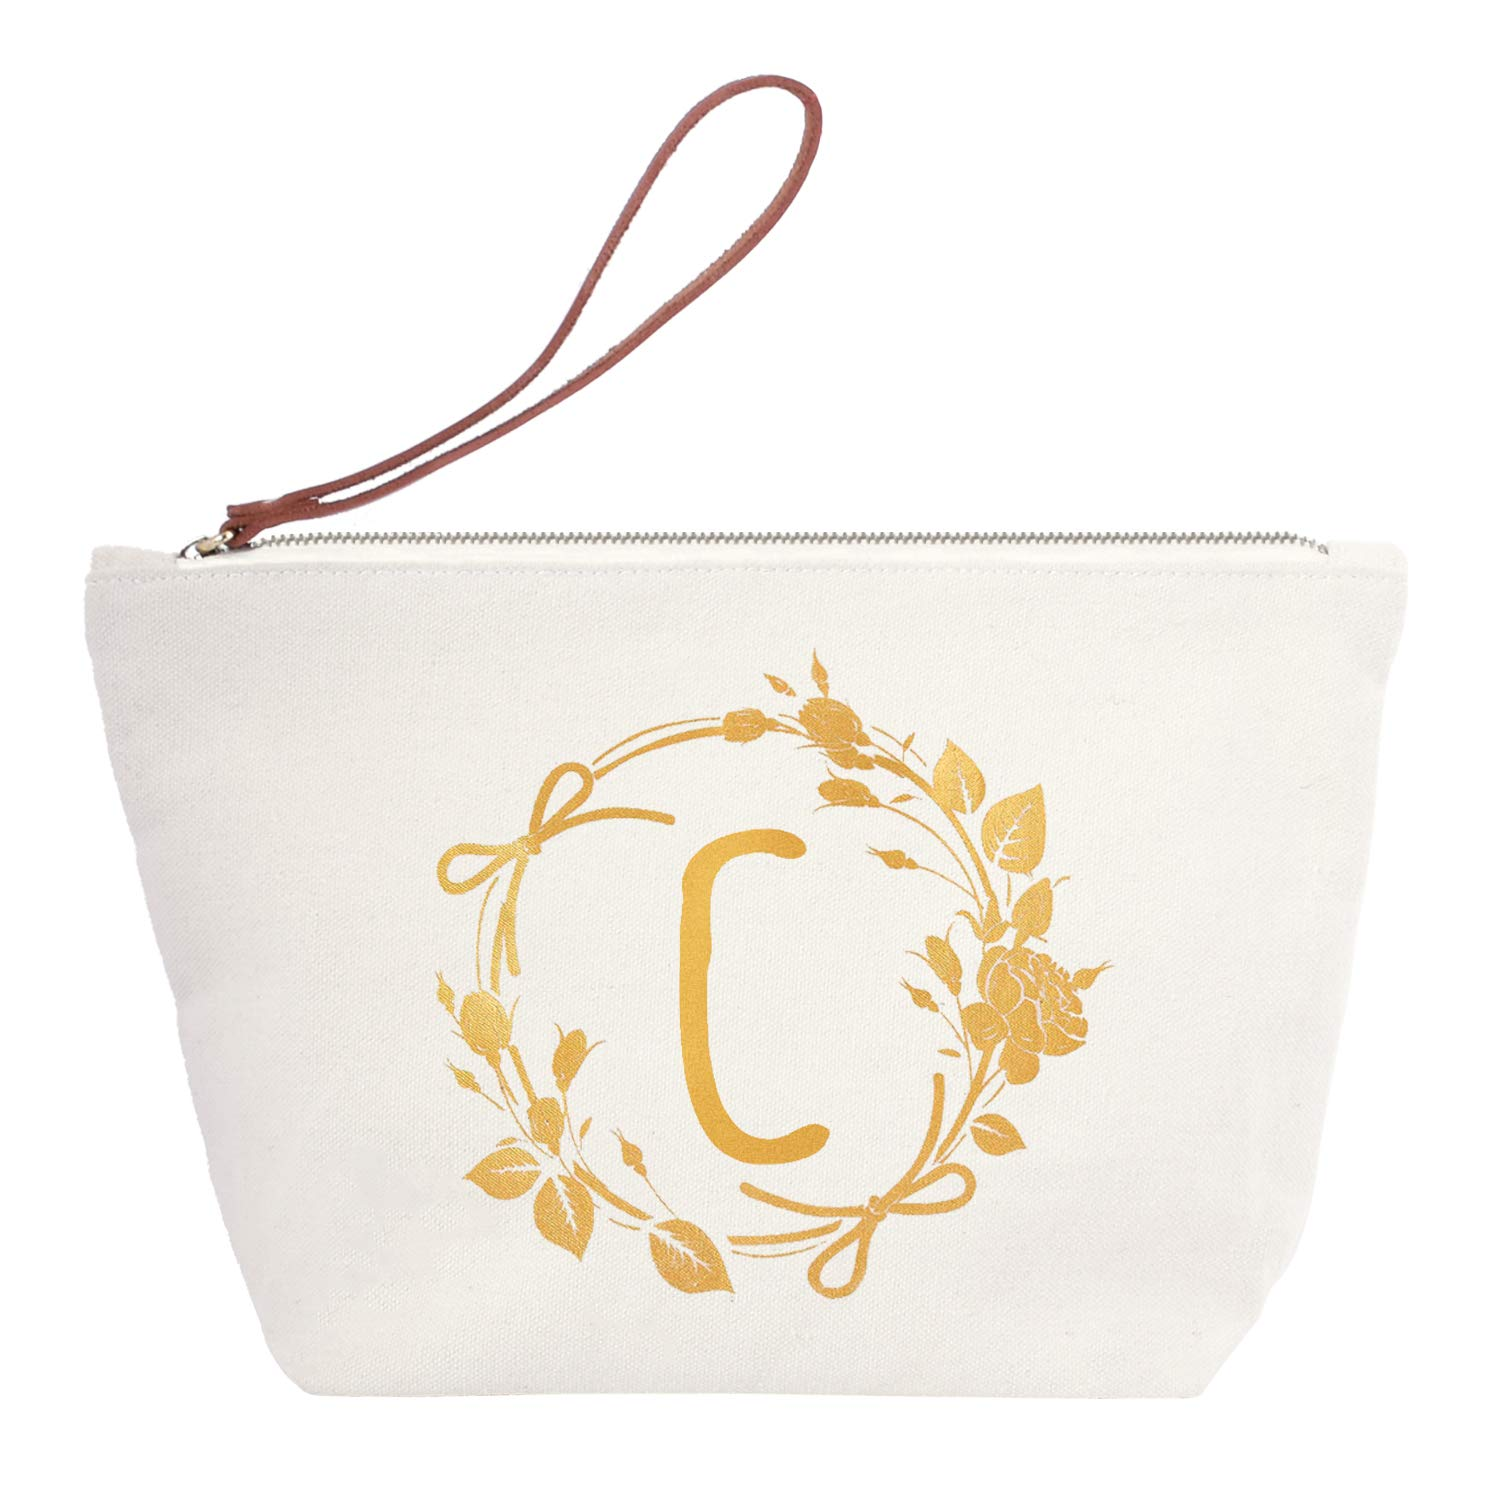 ElegantPark C Initial Monogram Personalized Travel Makeup Cosmetic Bag Wristlet Pouch Gifts with Zipper Canvas